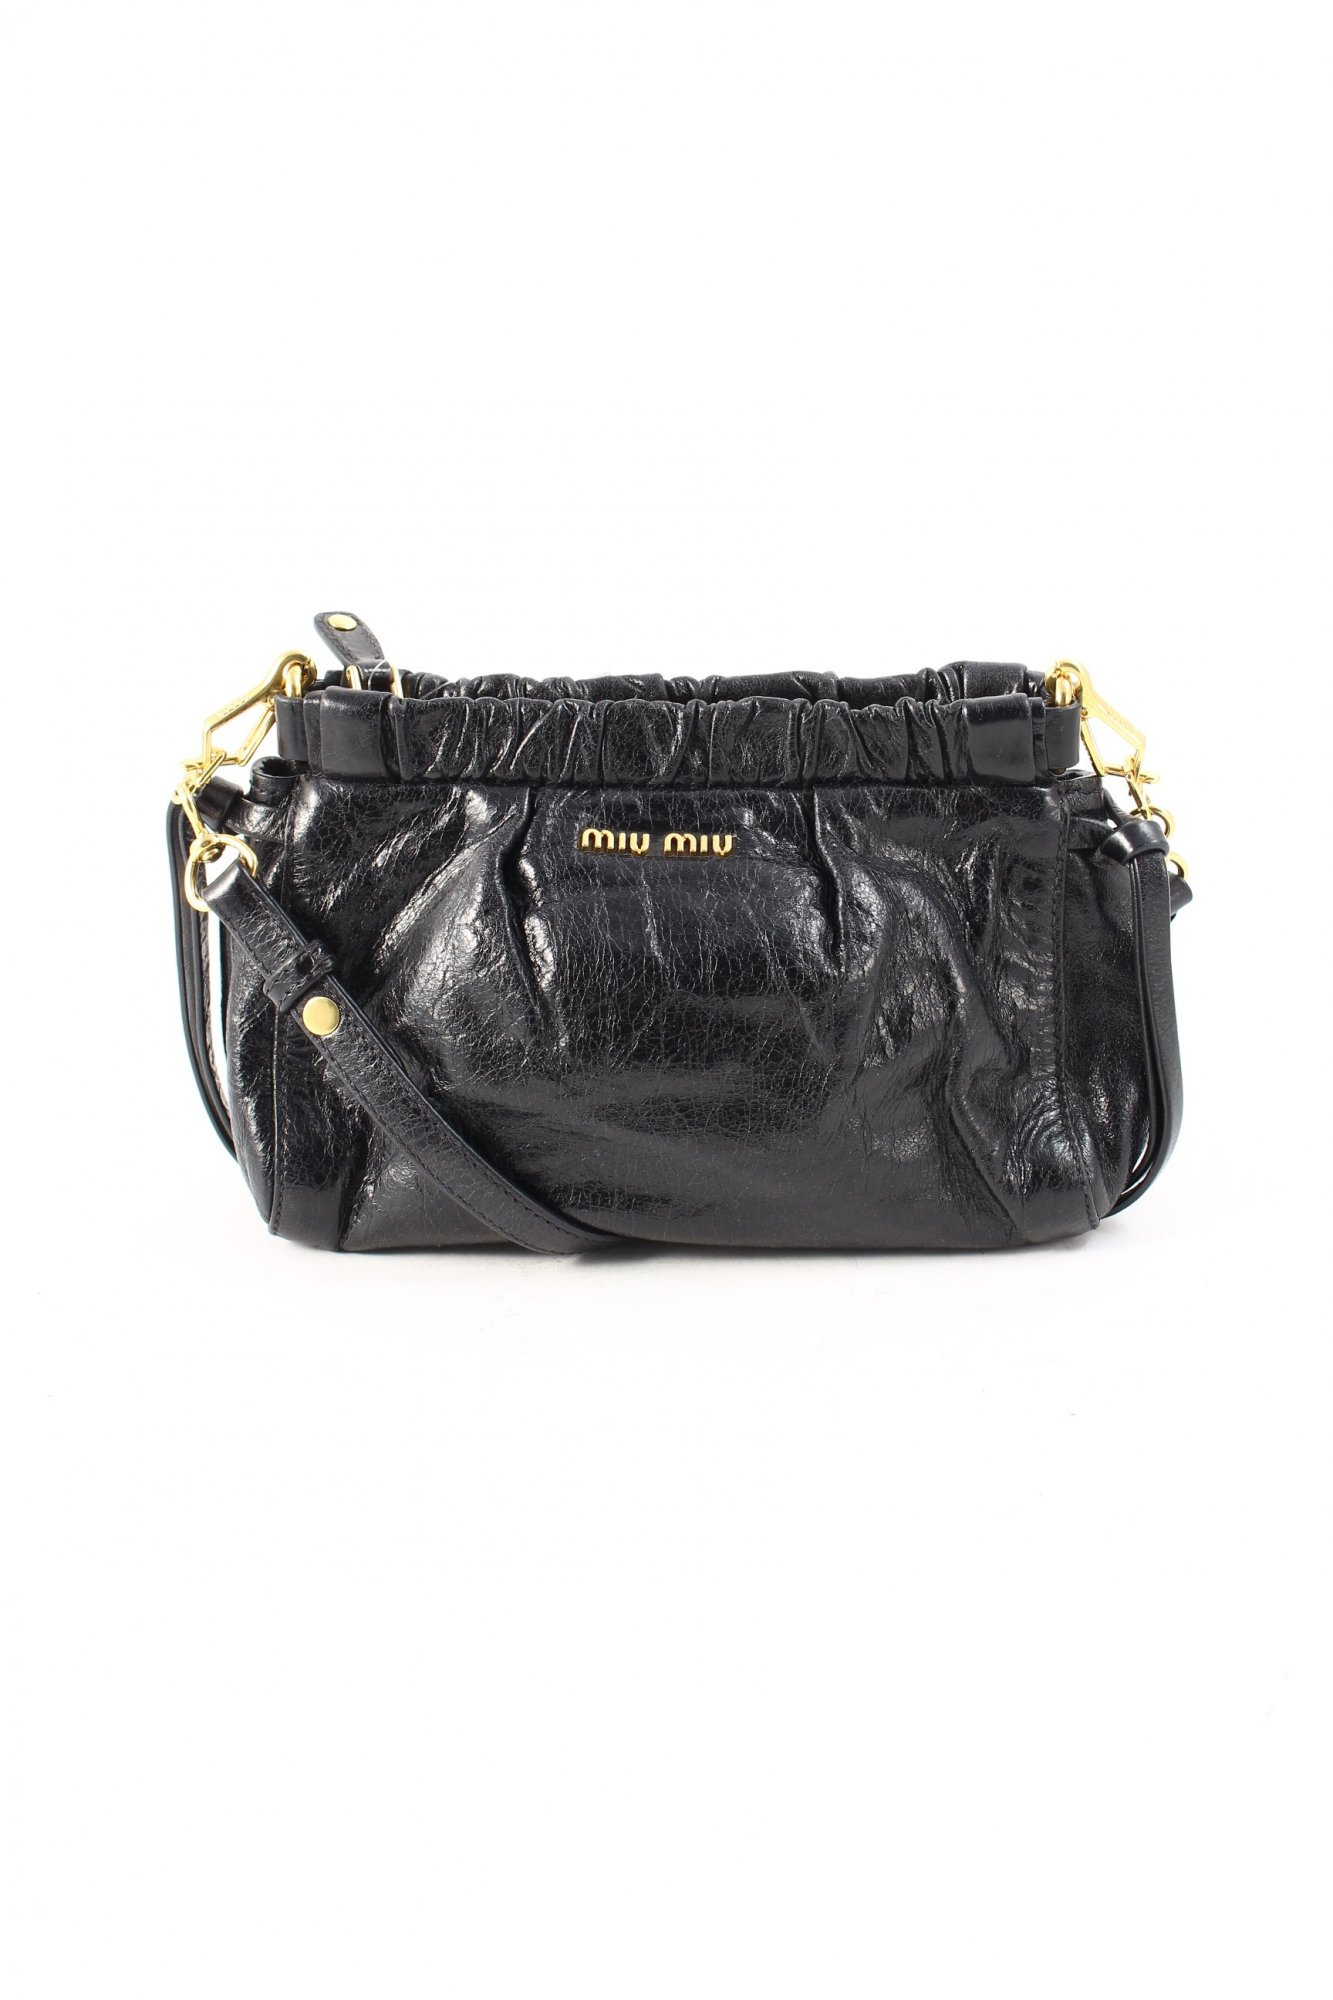 miu miu umh ngetasche schwarz elegant damen tasche bag leder crossbody bag ebay. Black Bedroom Furniture Sets. Home Design Ideas